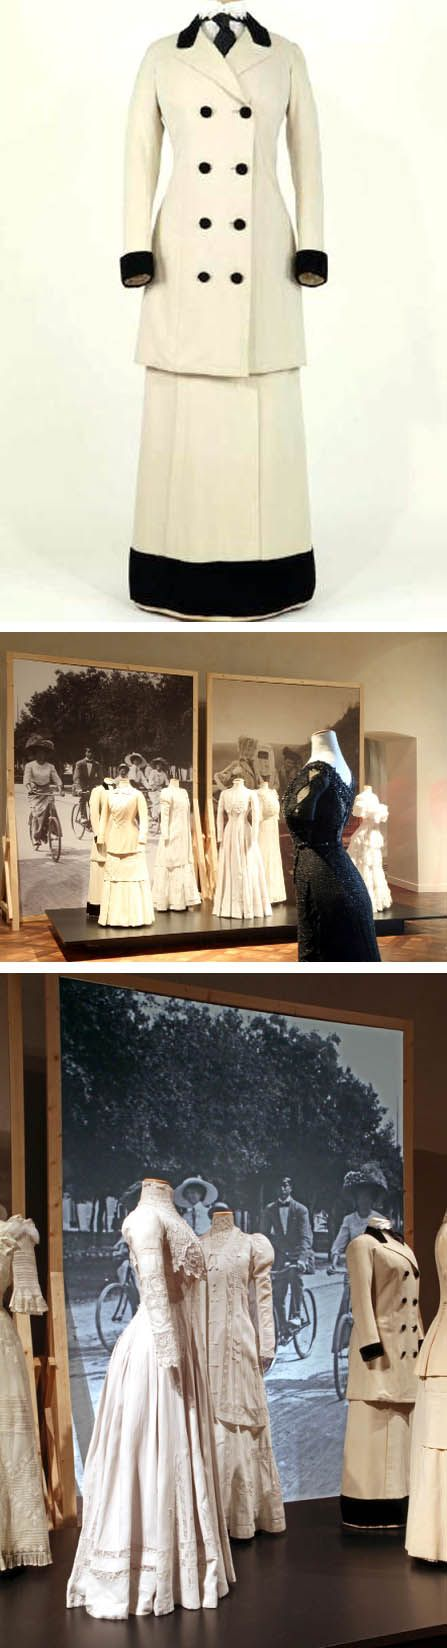 "From ""Fashion in Italy"" exhibit in Turin in 2012. At top is a walking suit of  Italian manufacture, Rome, Fondazione Tirelli Trappetti, ca. 1912."